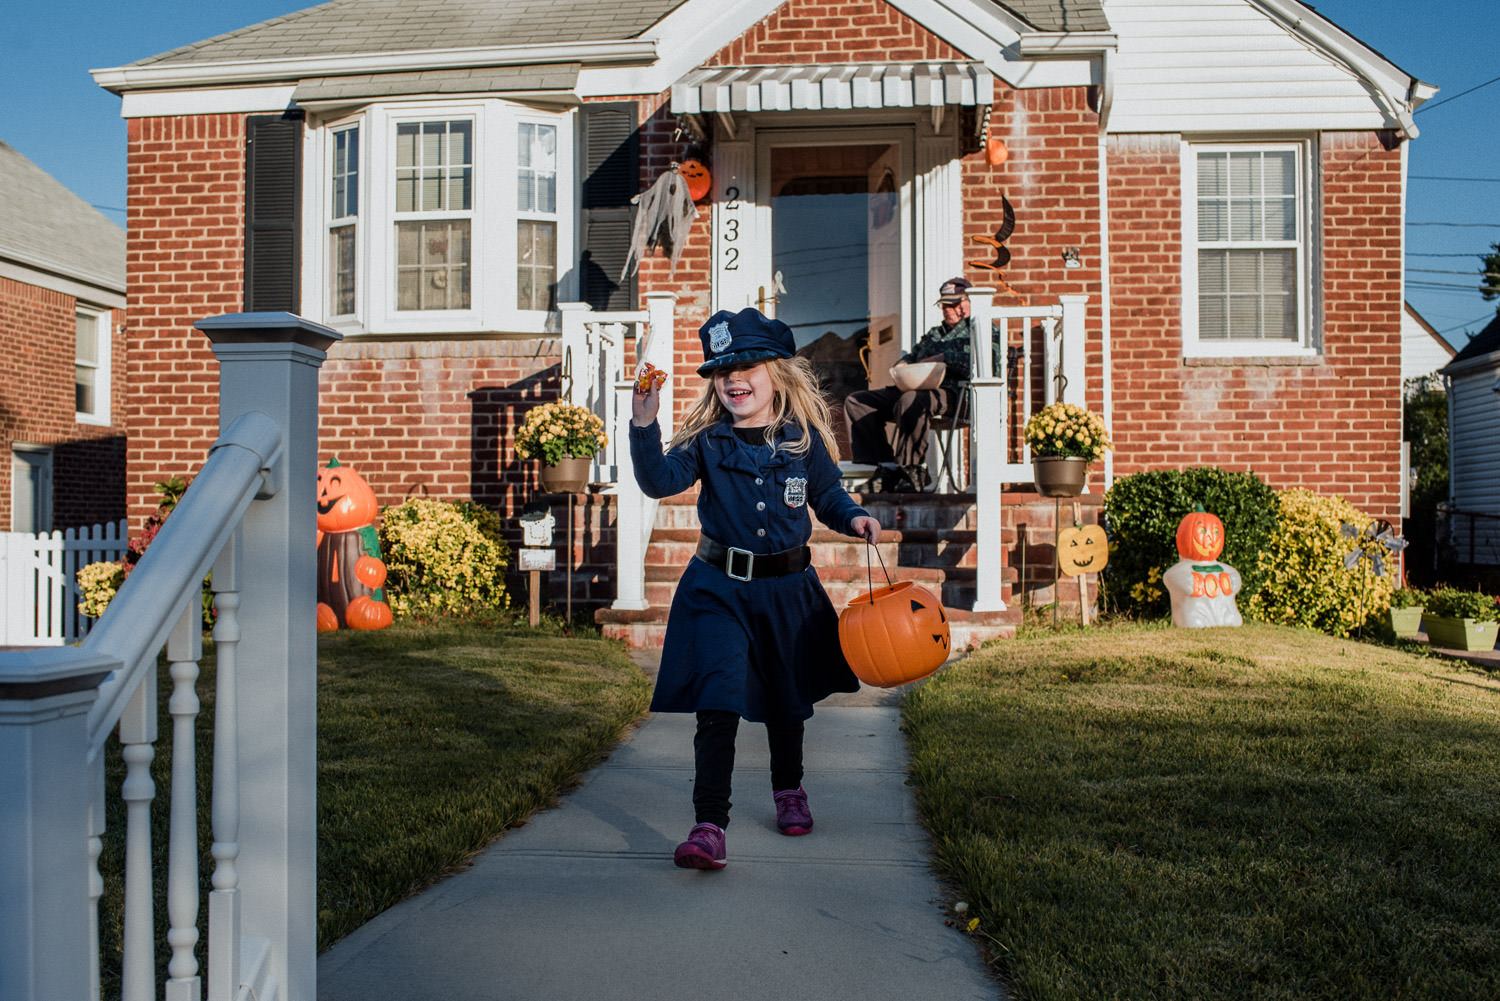 A little girl dressed as a police officer trick or treats.